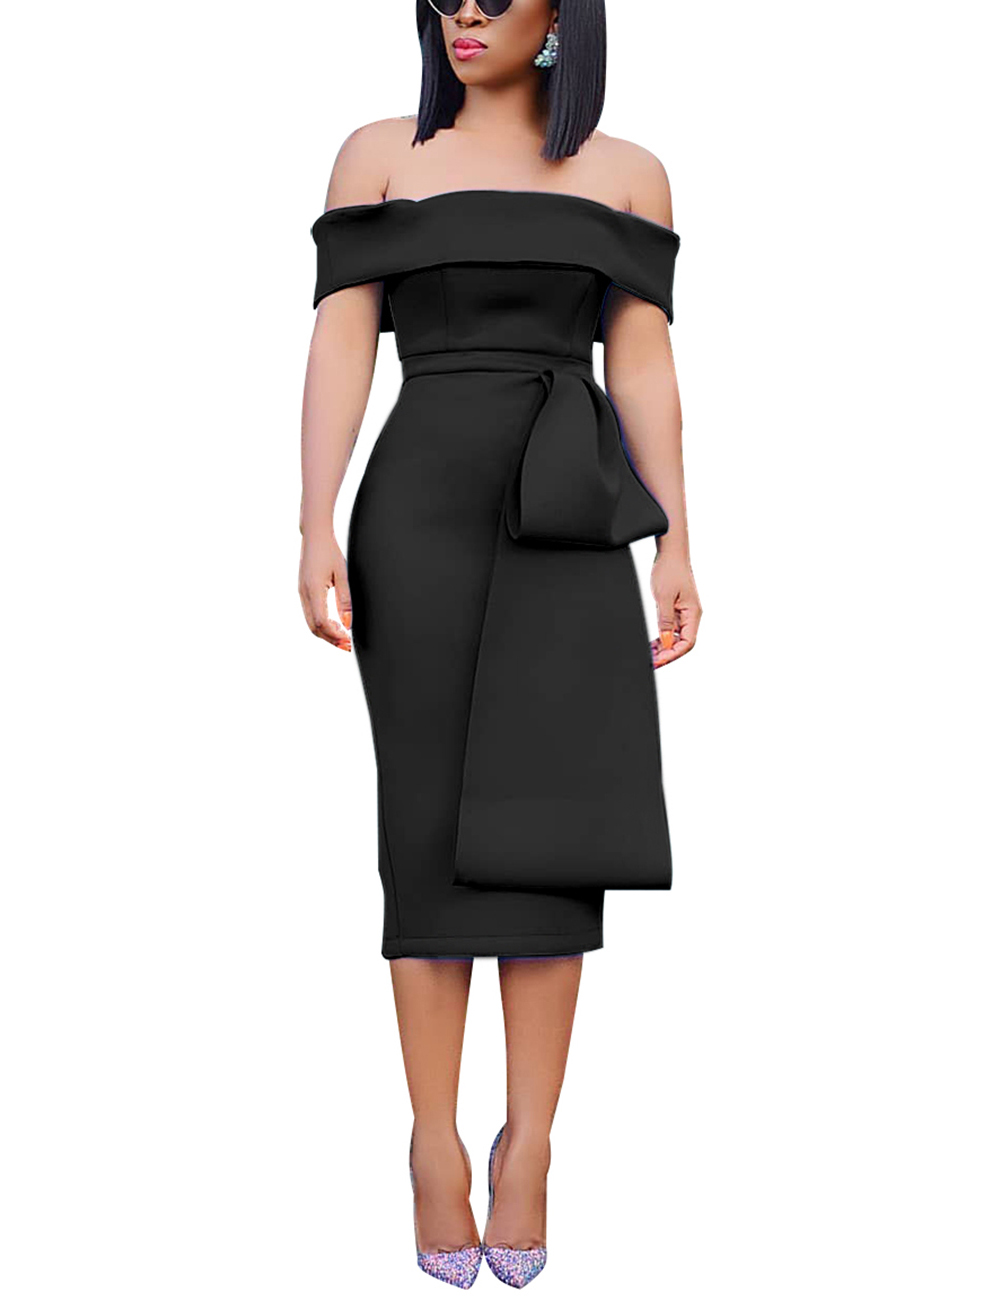 //cdn.affectcloud.com/hexinfashion/upload/imgs/Dress/Bodycon_Dress/VZ190316-BK1/VZ190316-BK1-201911055dc134b039d74.jpg